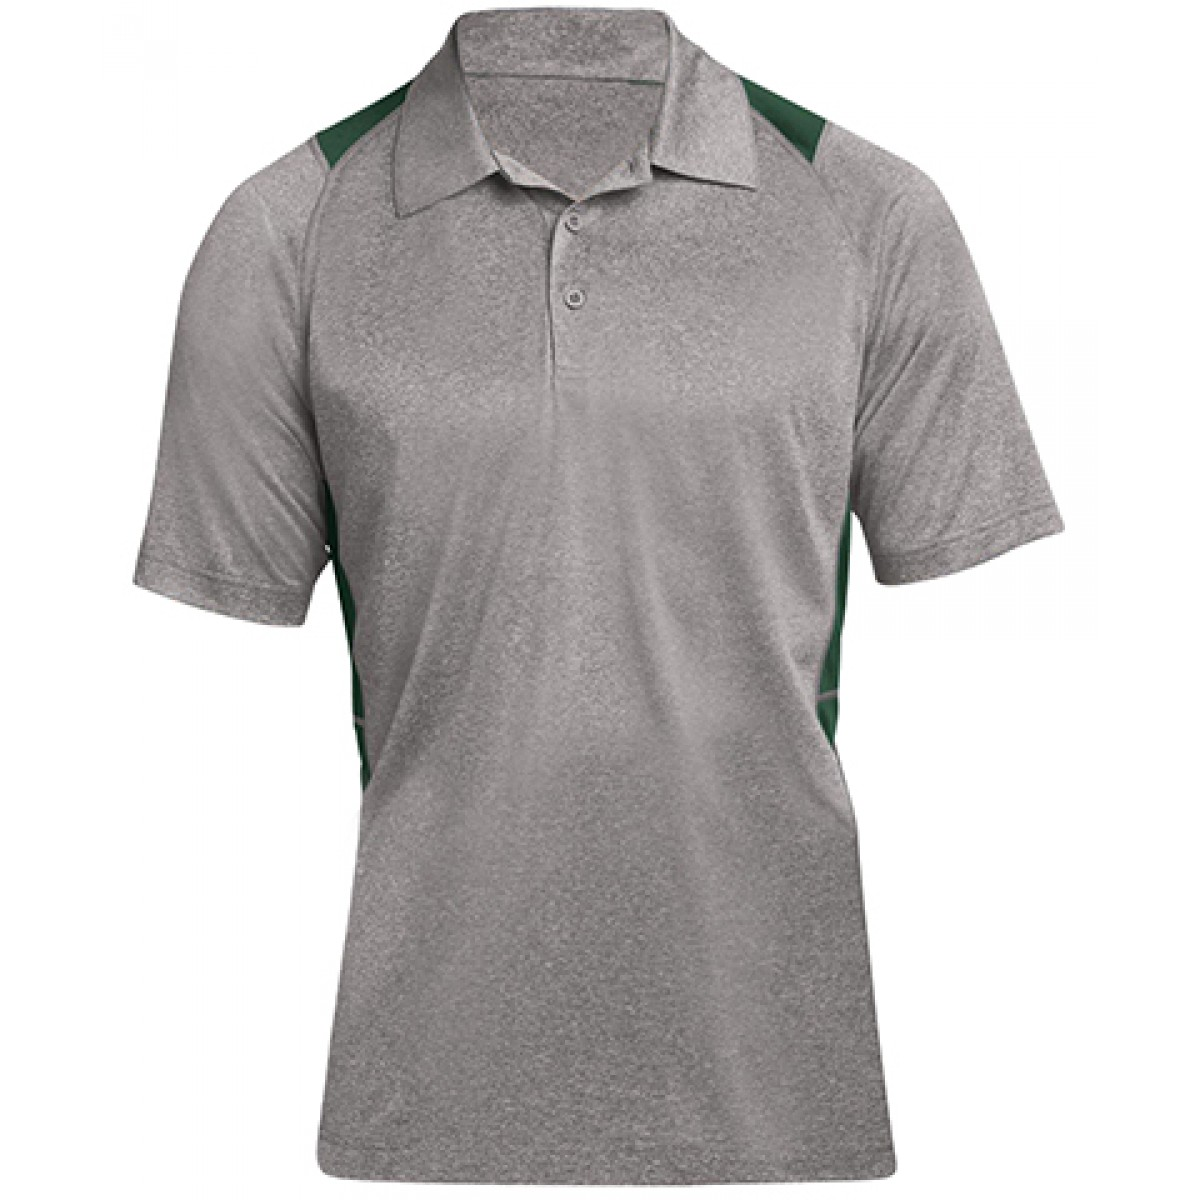 Heather Colorblock Contender Polo-Gray/Green-S